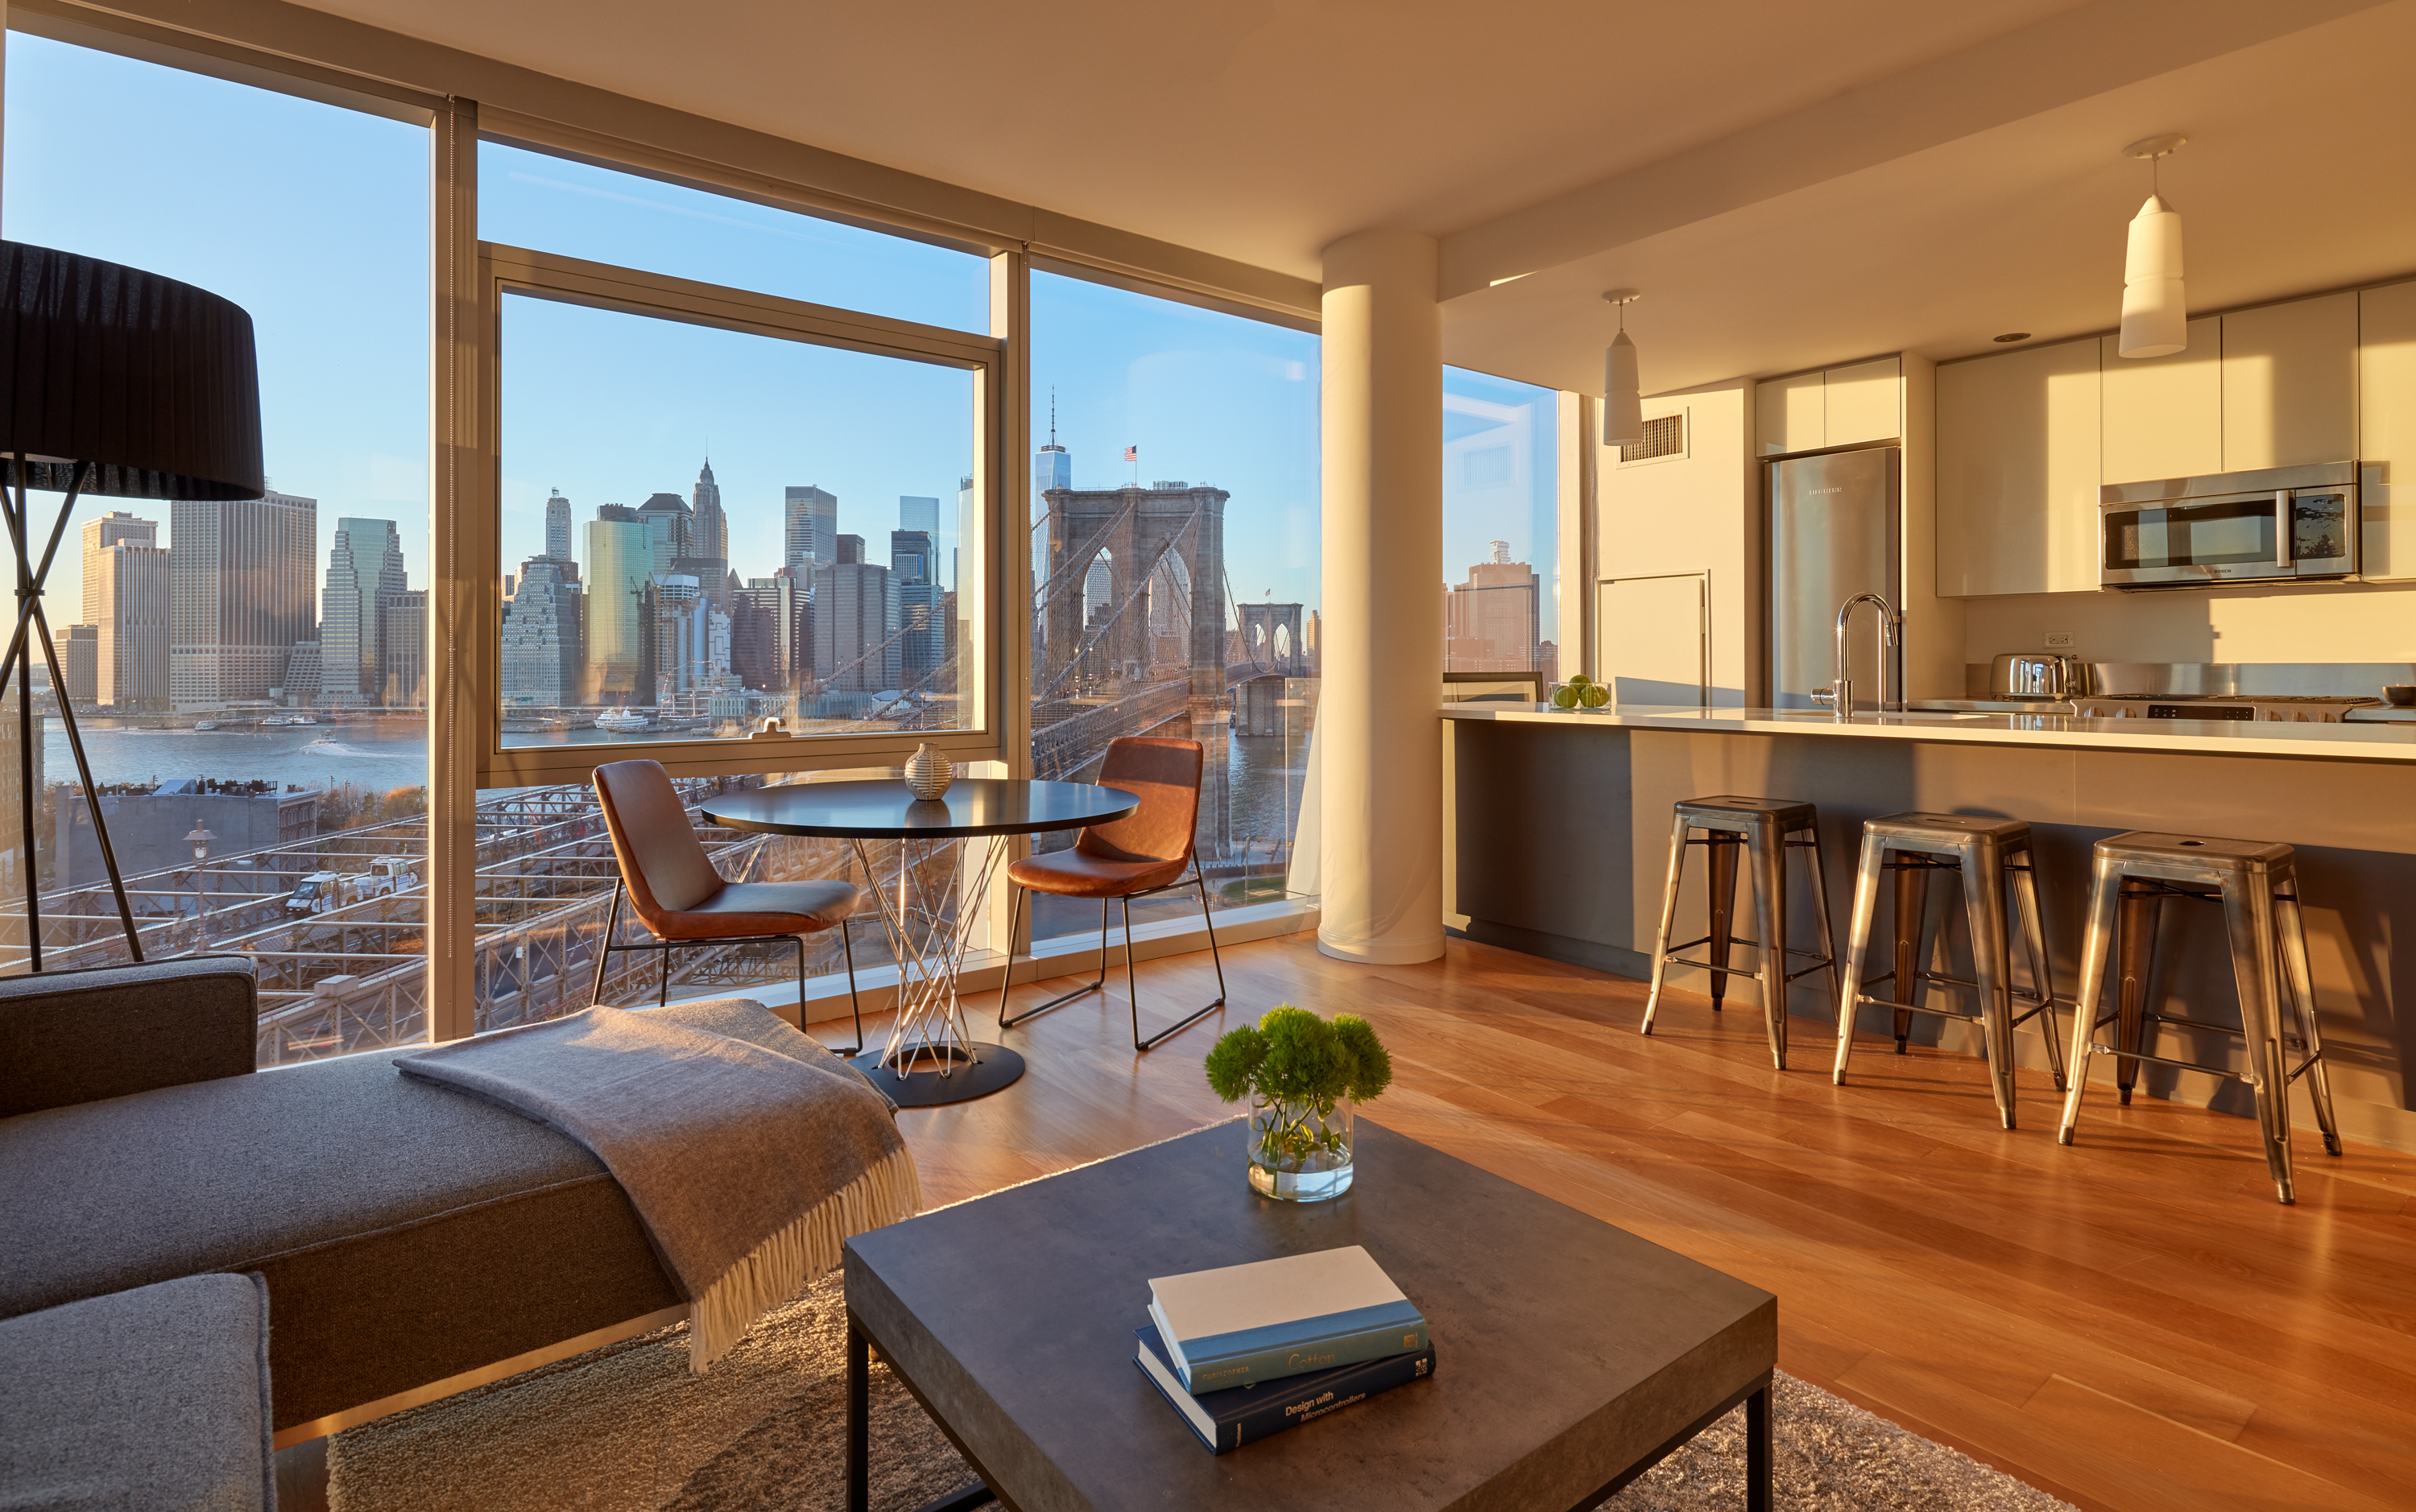 2 Bedroom with City Skyline Views in Dumbo